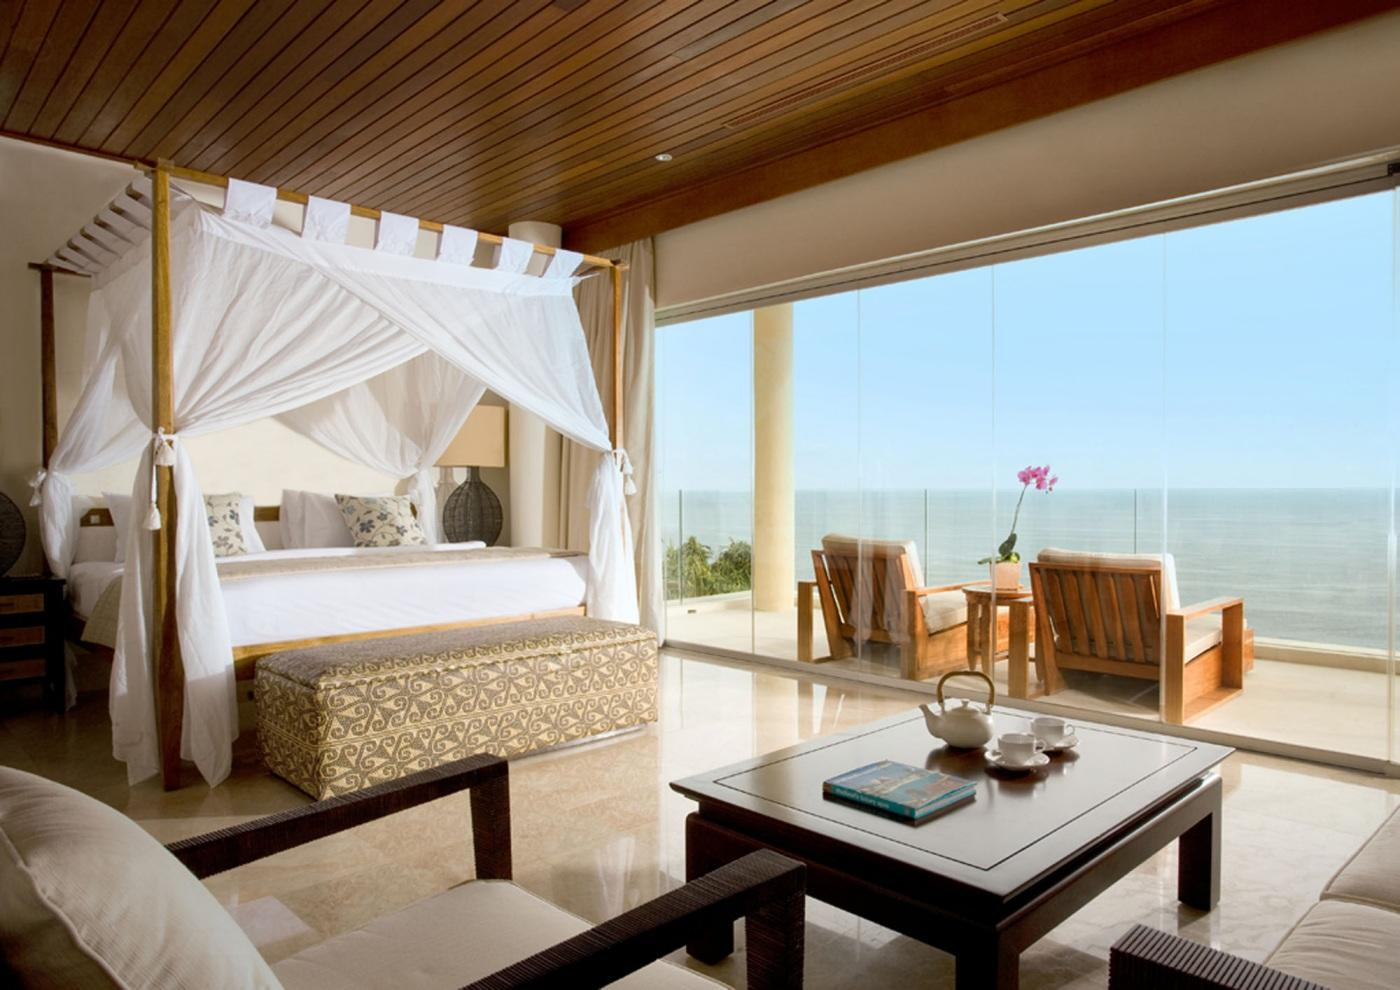 Luxurious bedroom design ideas for a modern home for Modern beach house bedroom